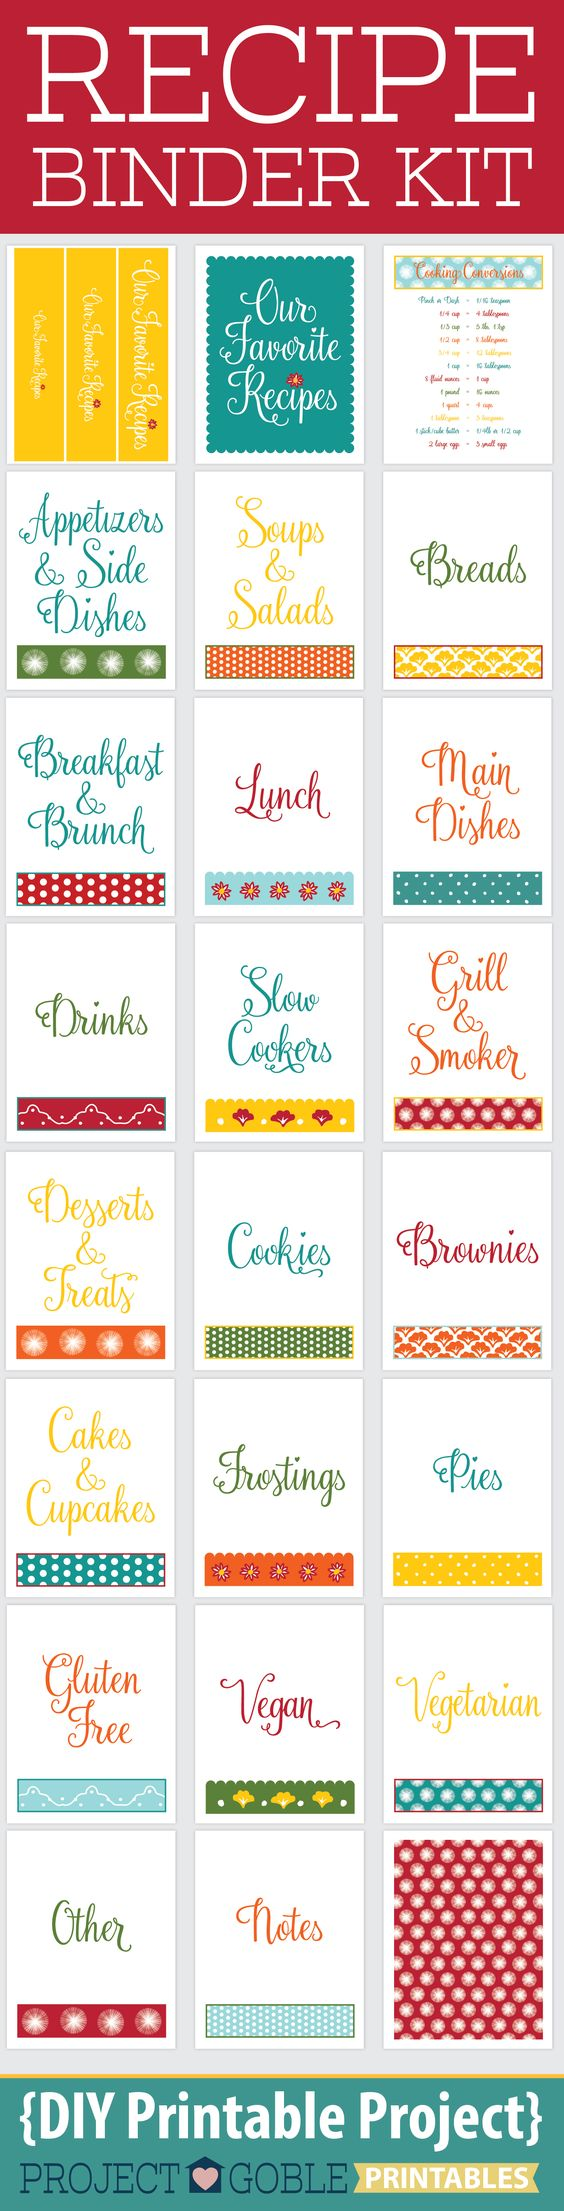 best images about recipe books on pinterest recipe binders